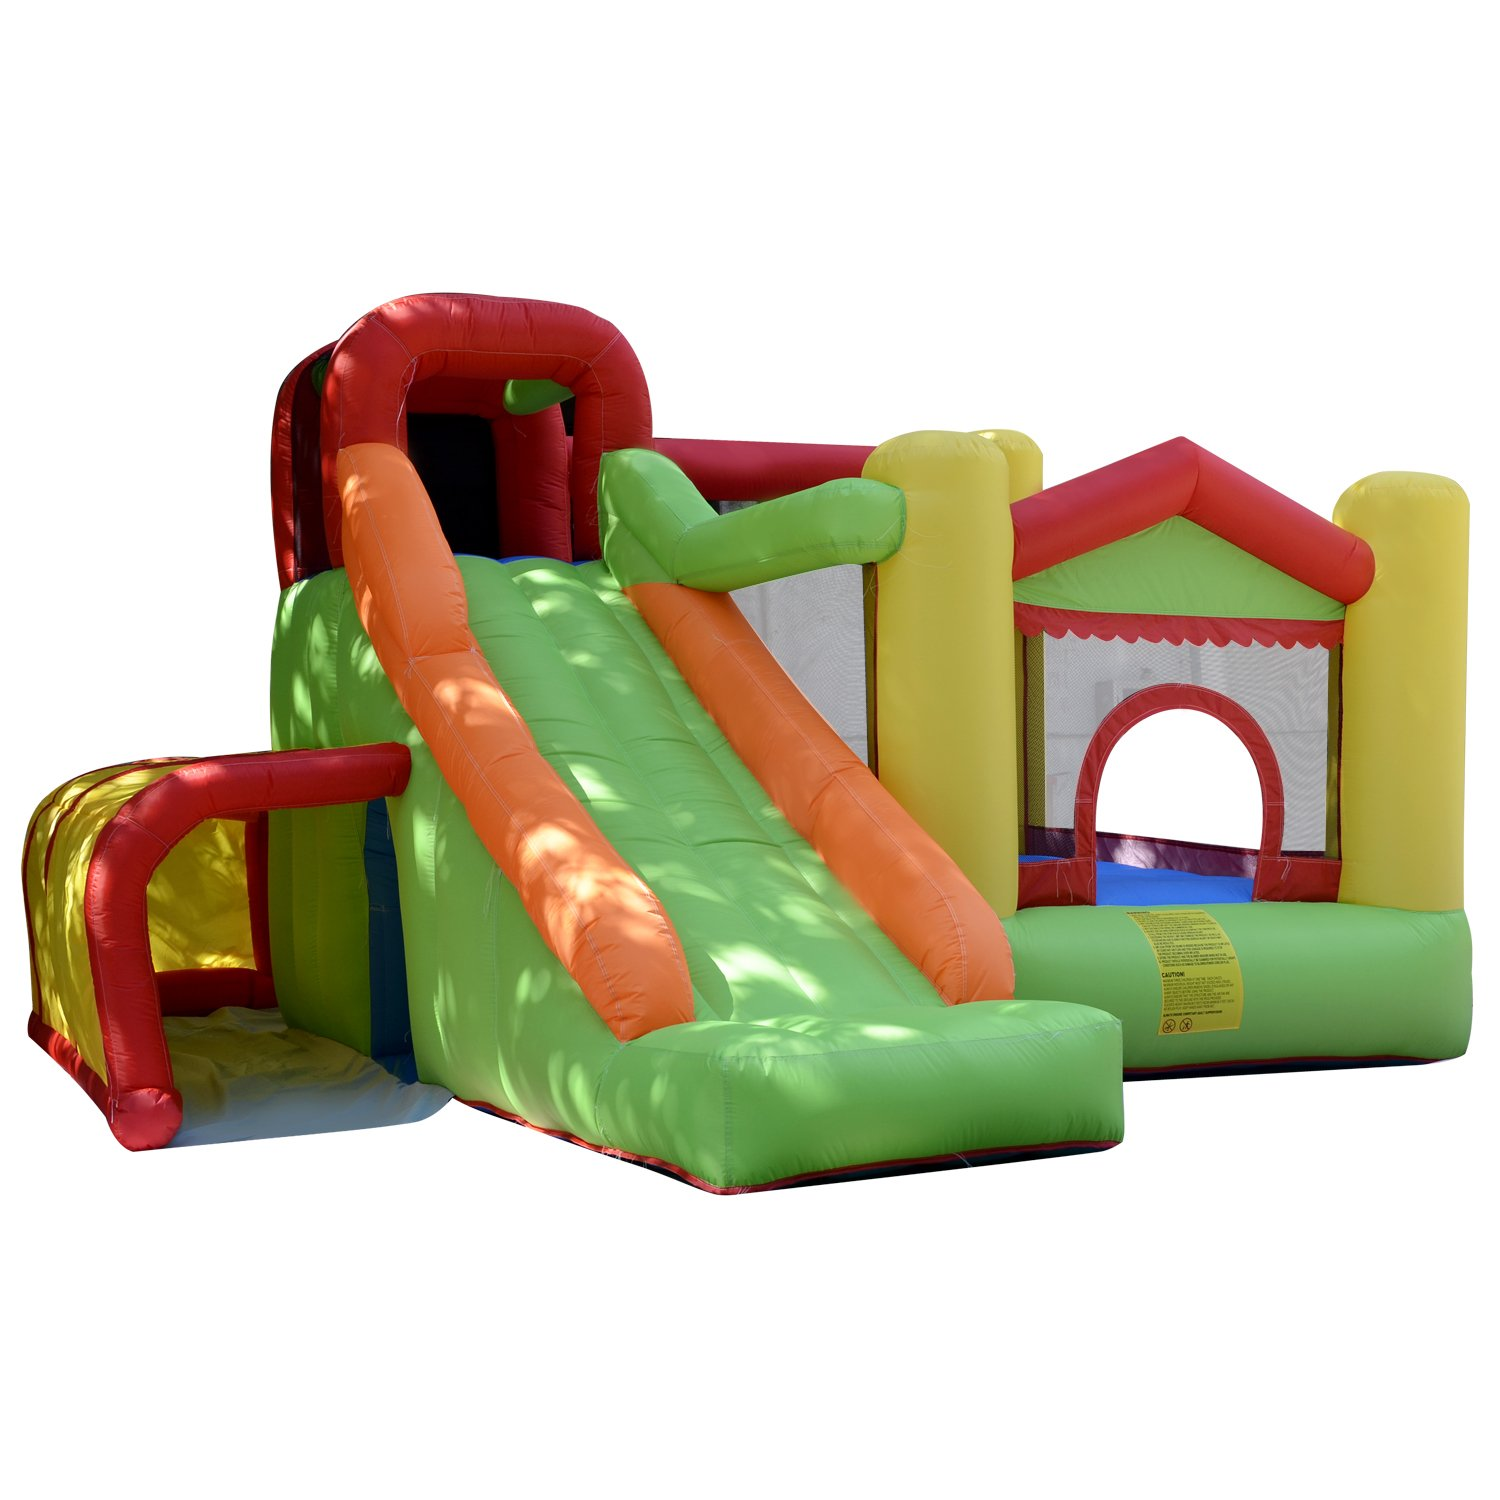 Vansop Outdoor Giant Commercial Kids Toddler Inflatable Bounce House with Slide (US Stock)